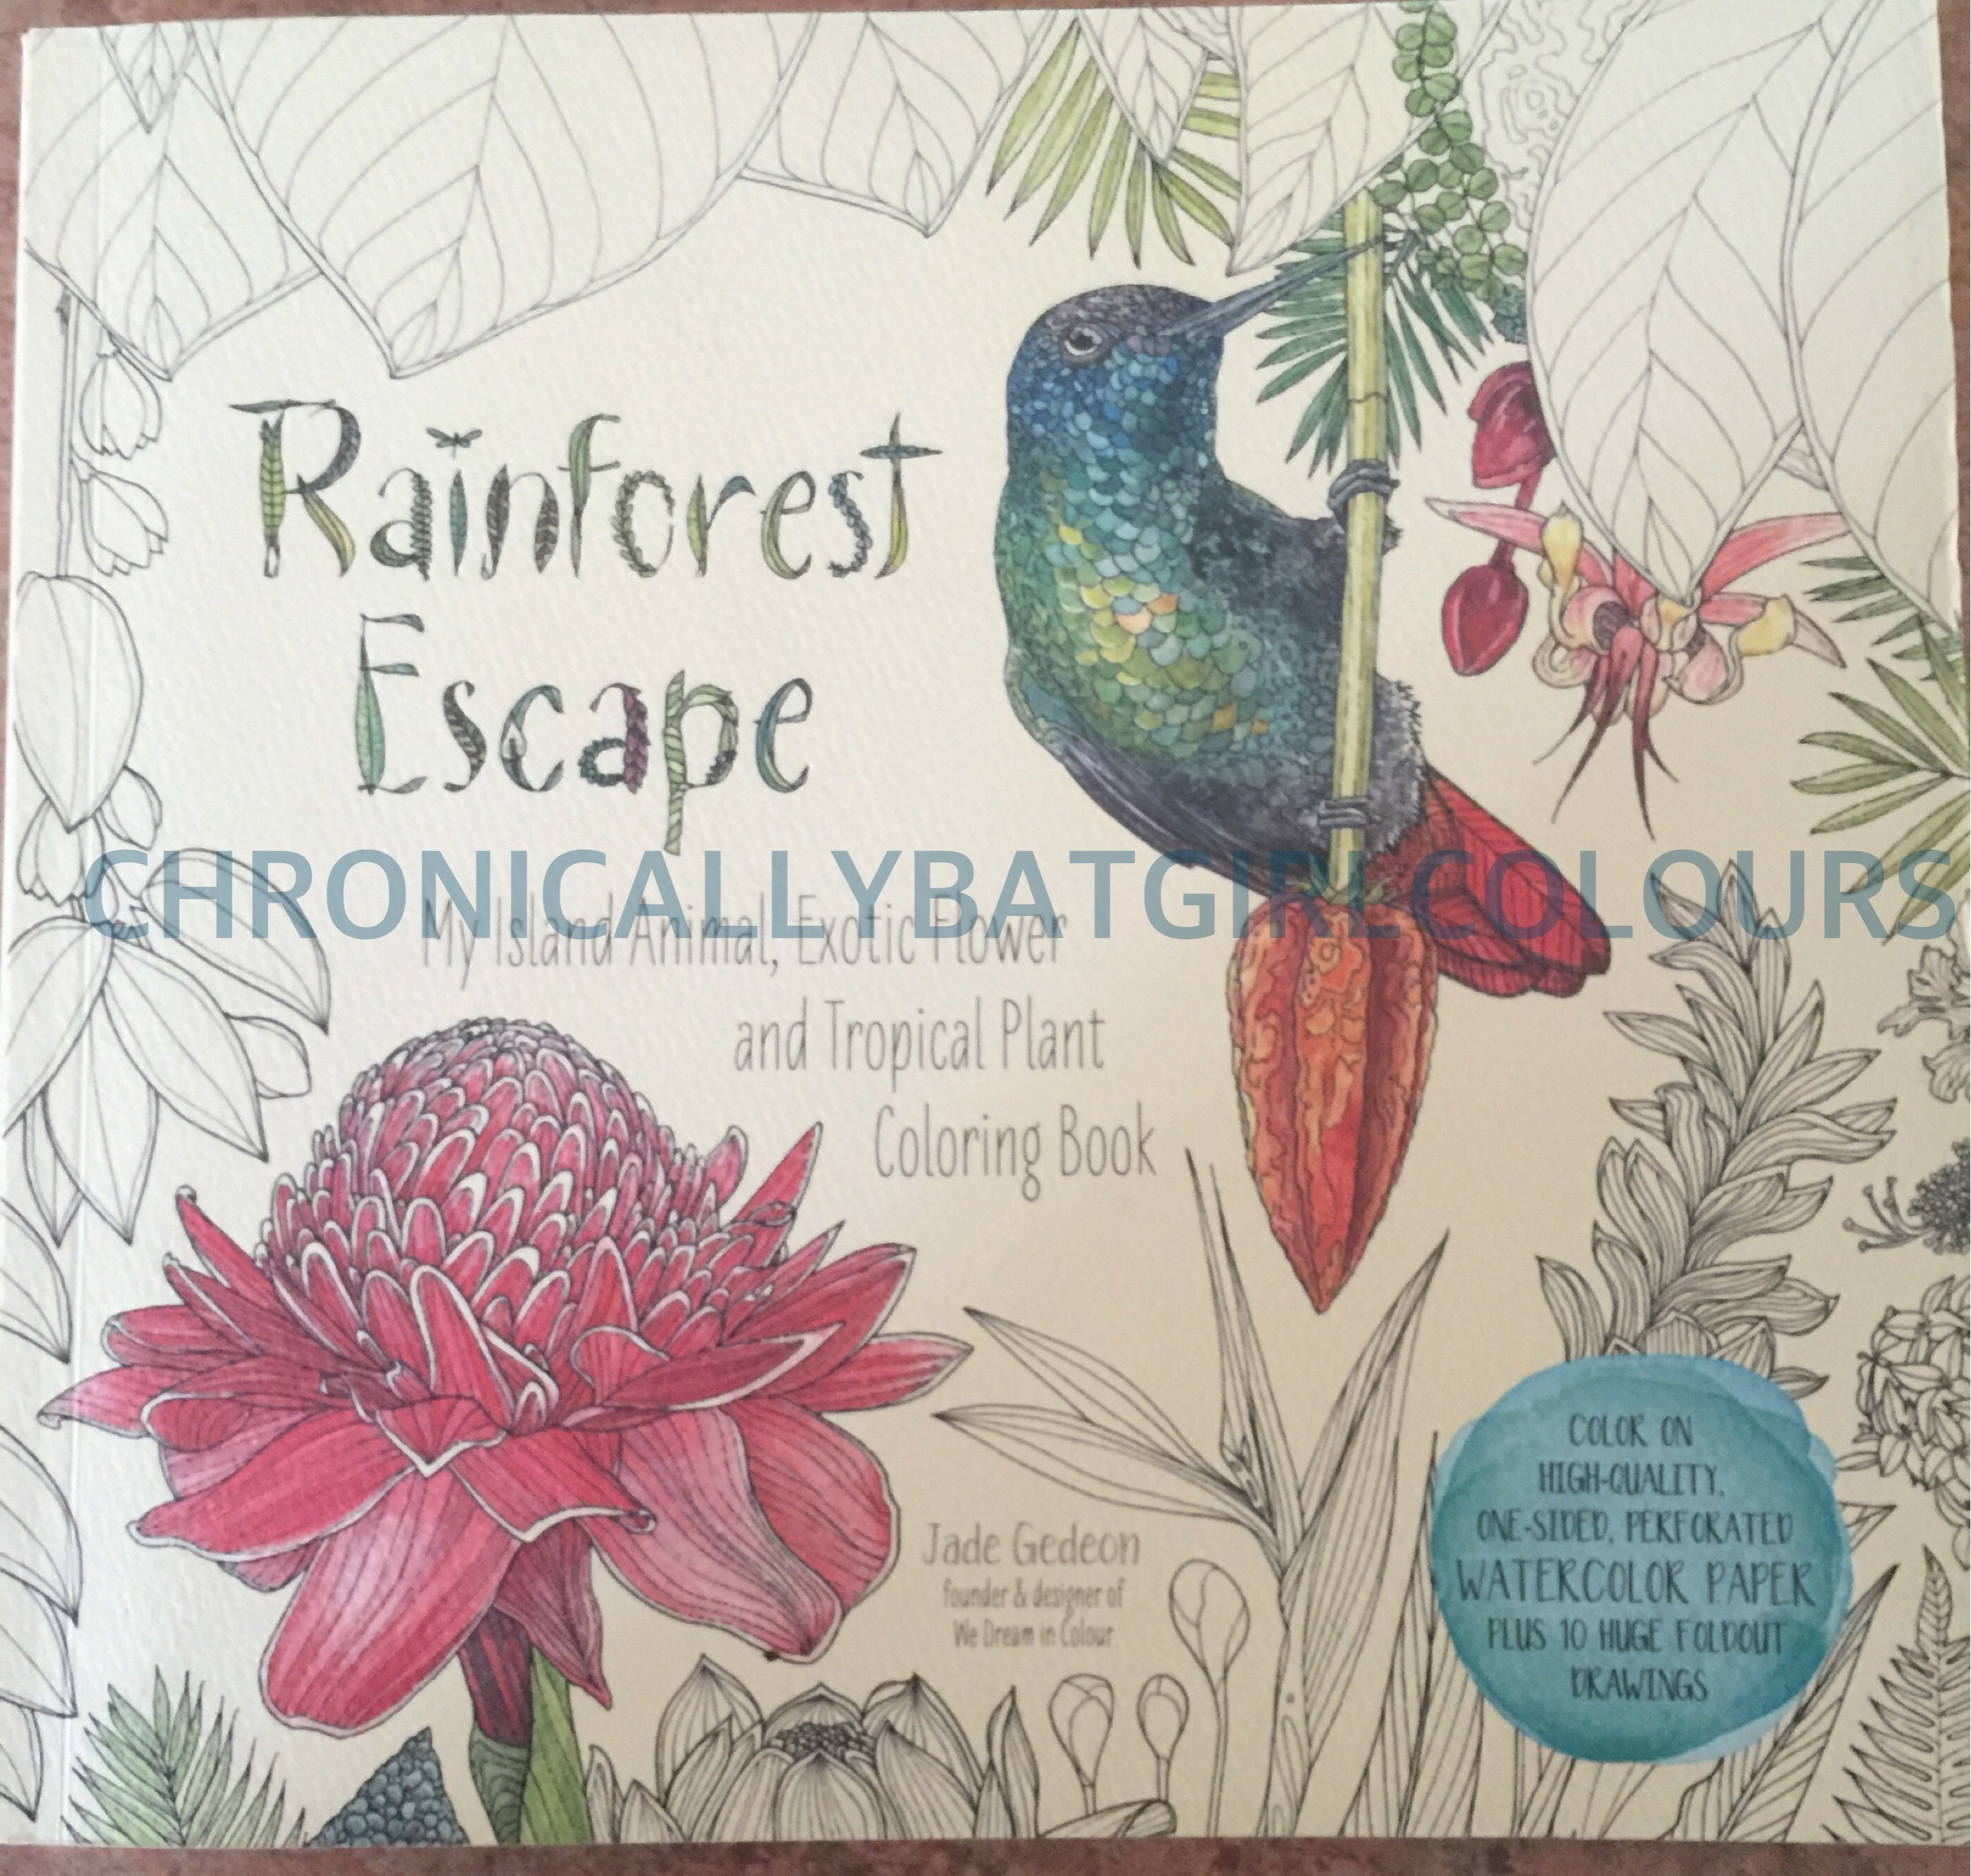 Rainforest Escape – Chronically Batgirl Colours